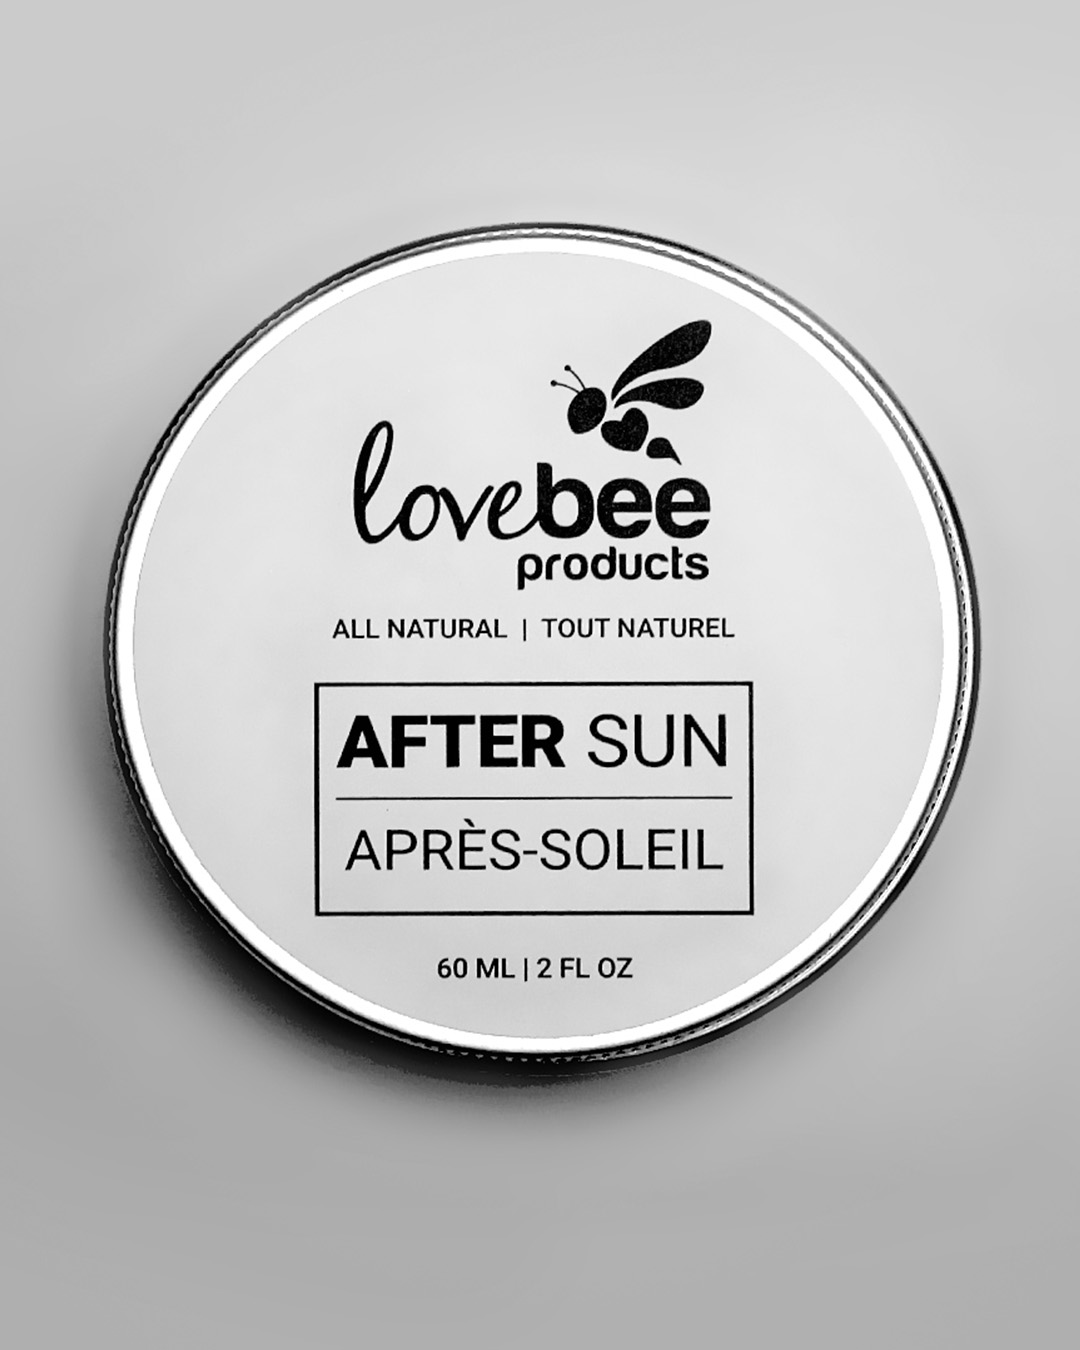 After Sun By Lovebee Products